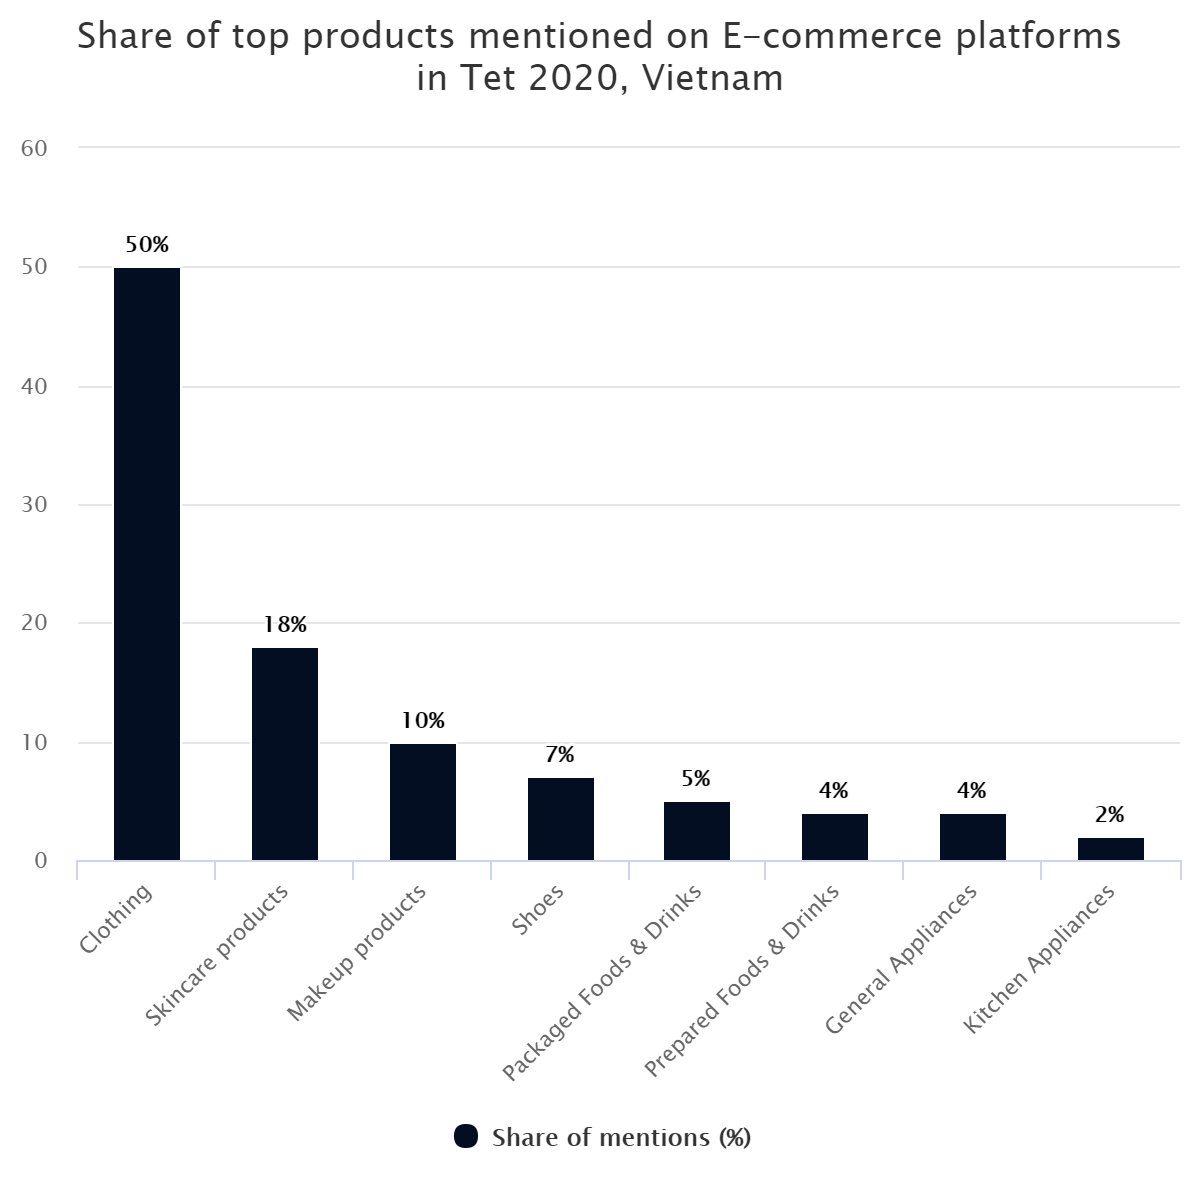 Share of top products mentioned on E-commerce platforms in Tet 2020, Vietnam